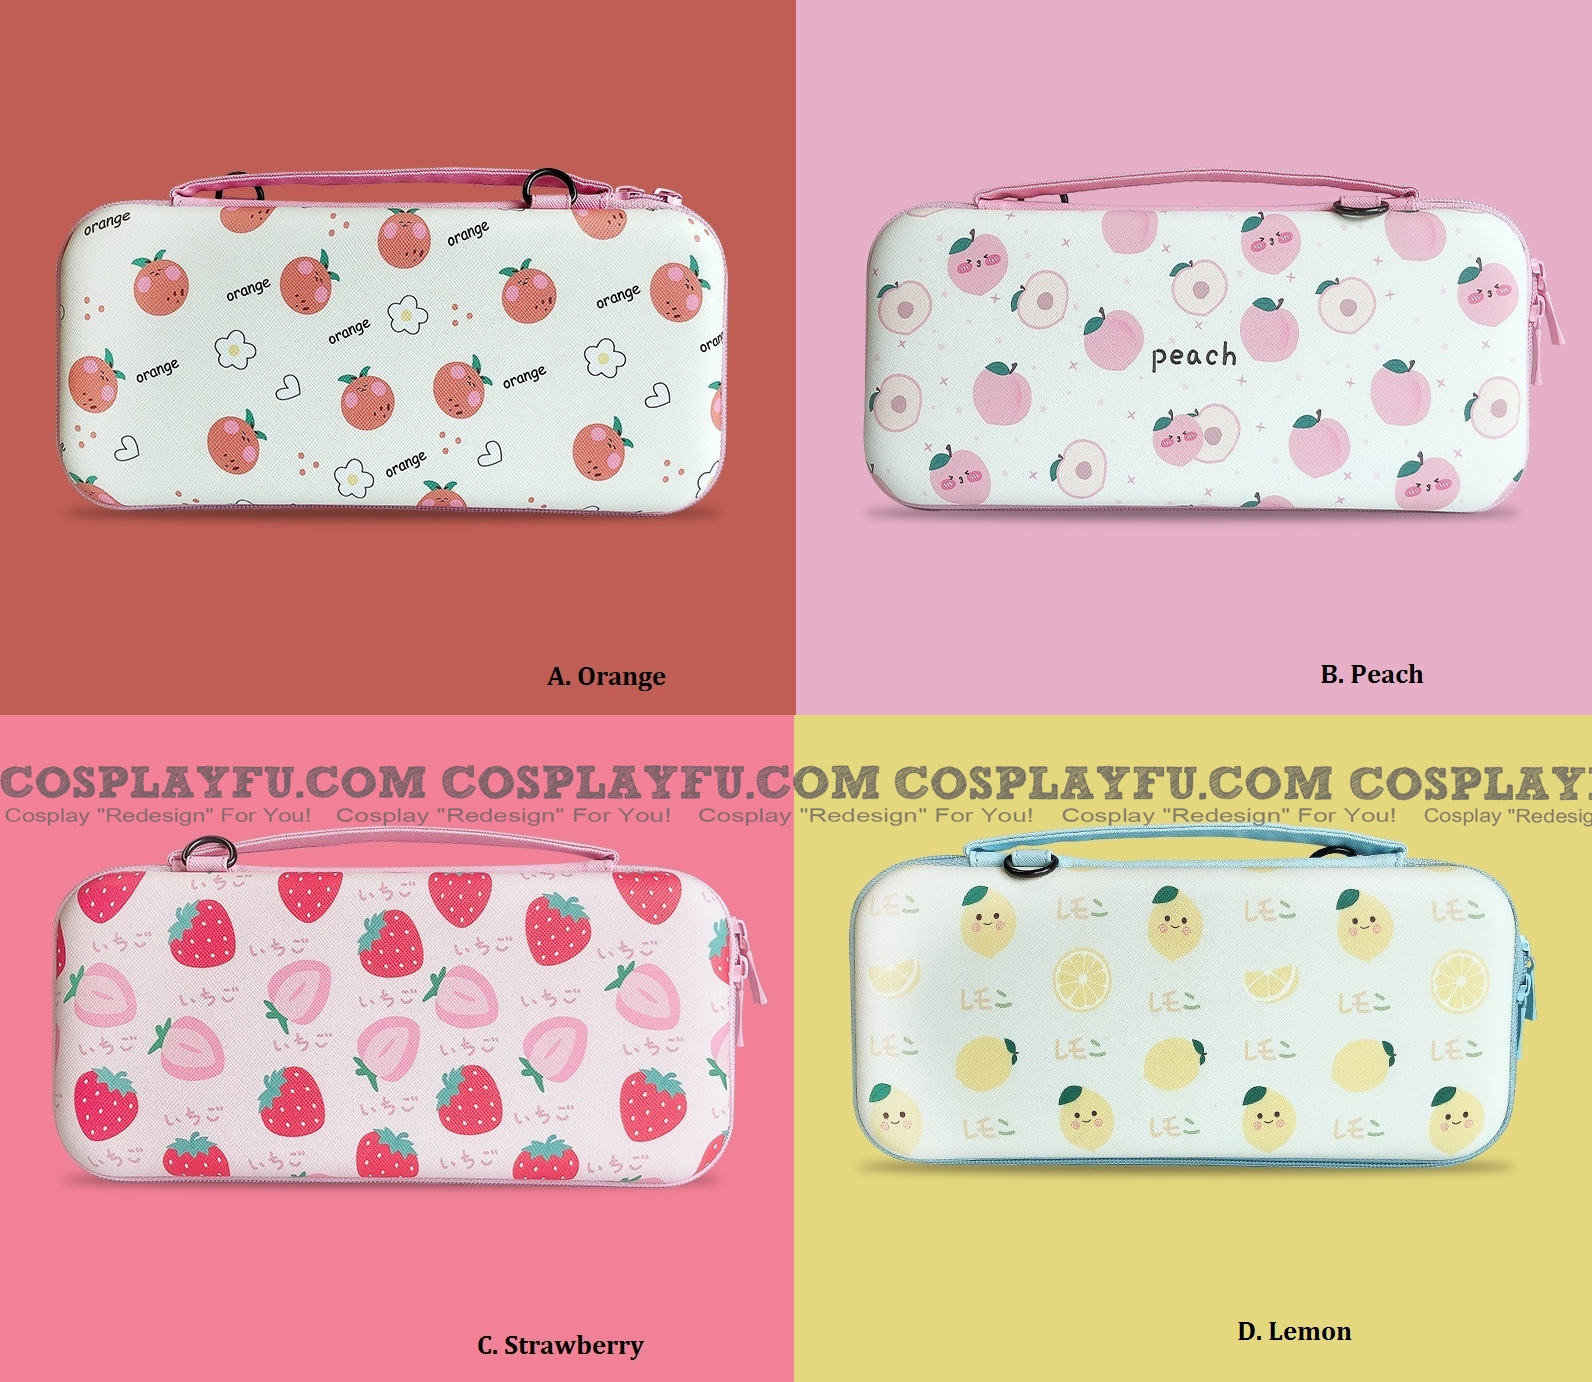 Cute Cartoon Fruits Orange Peach Strawberry Lemon Nintendo Switch Carrying Case - 12 Game Cards Holding